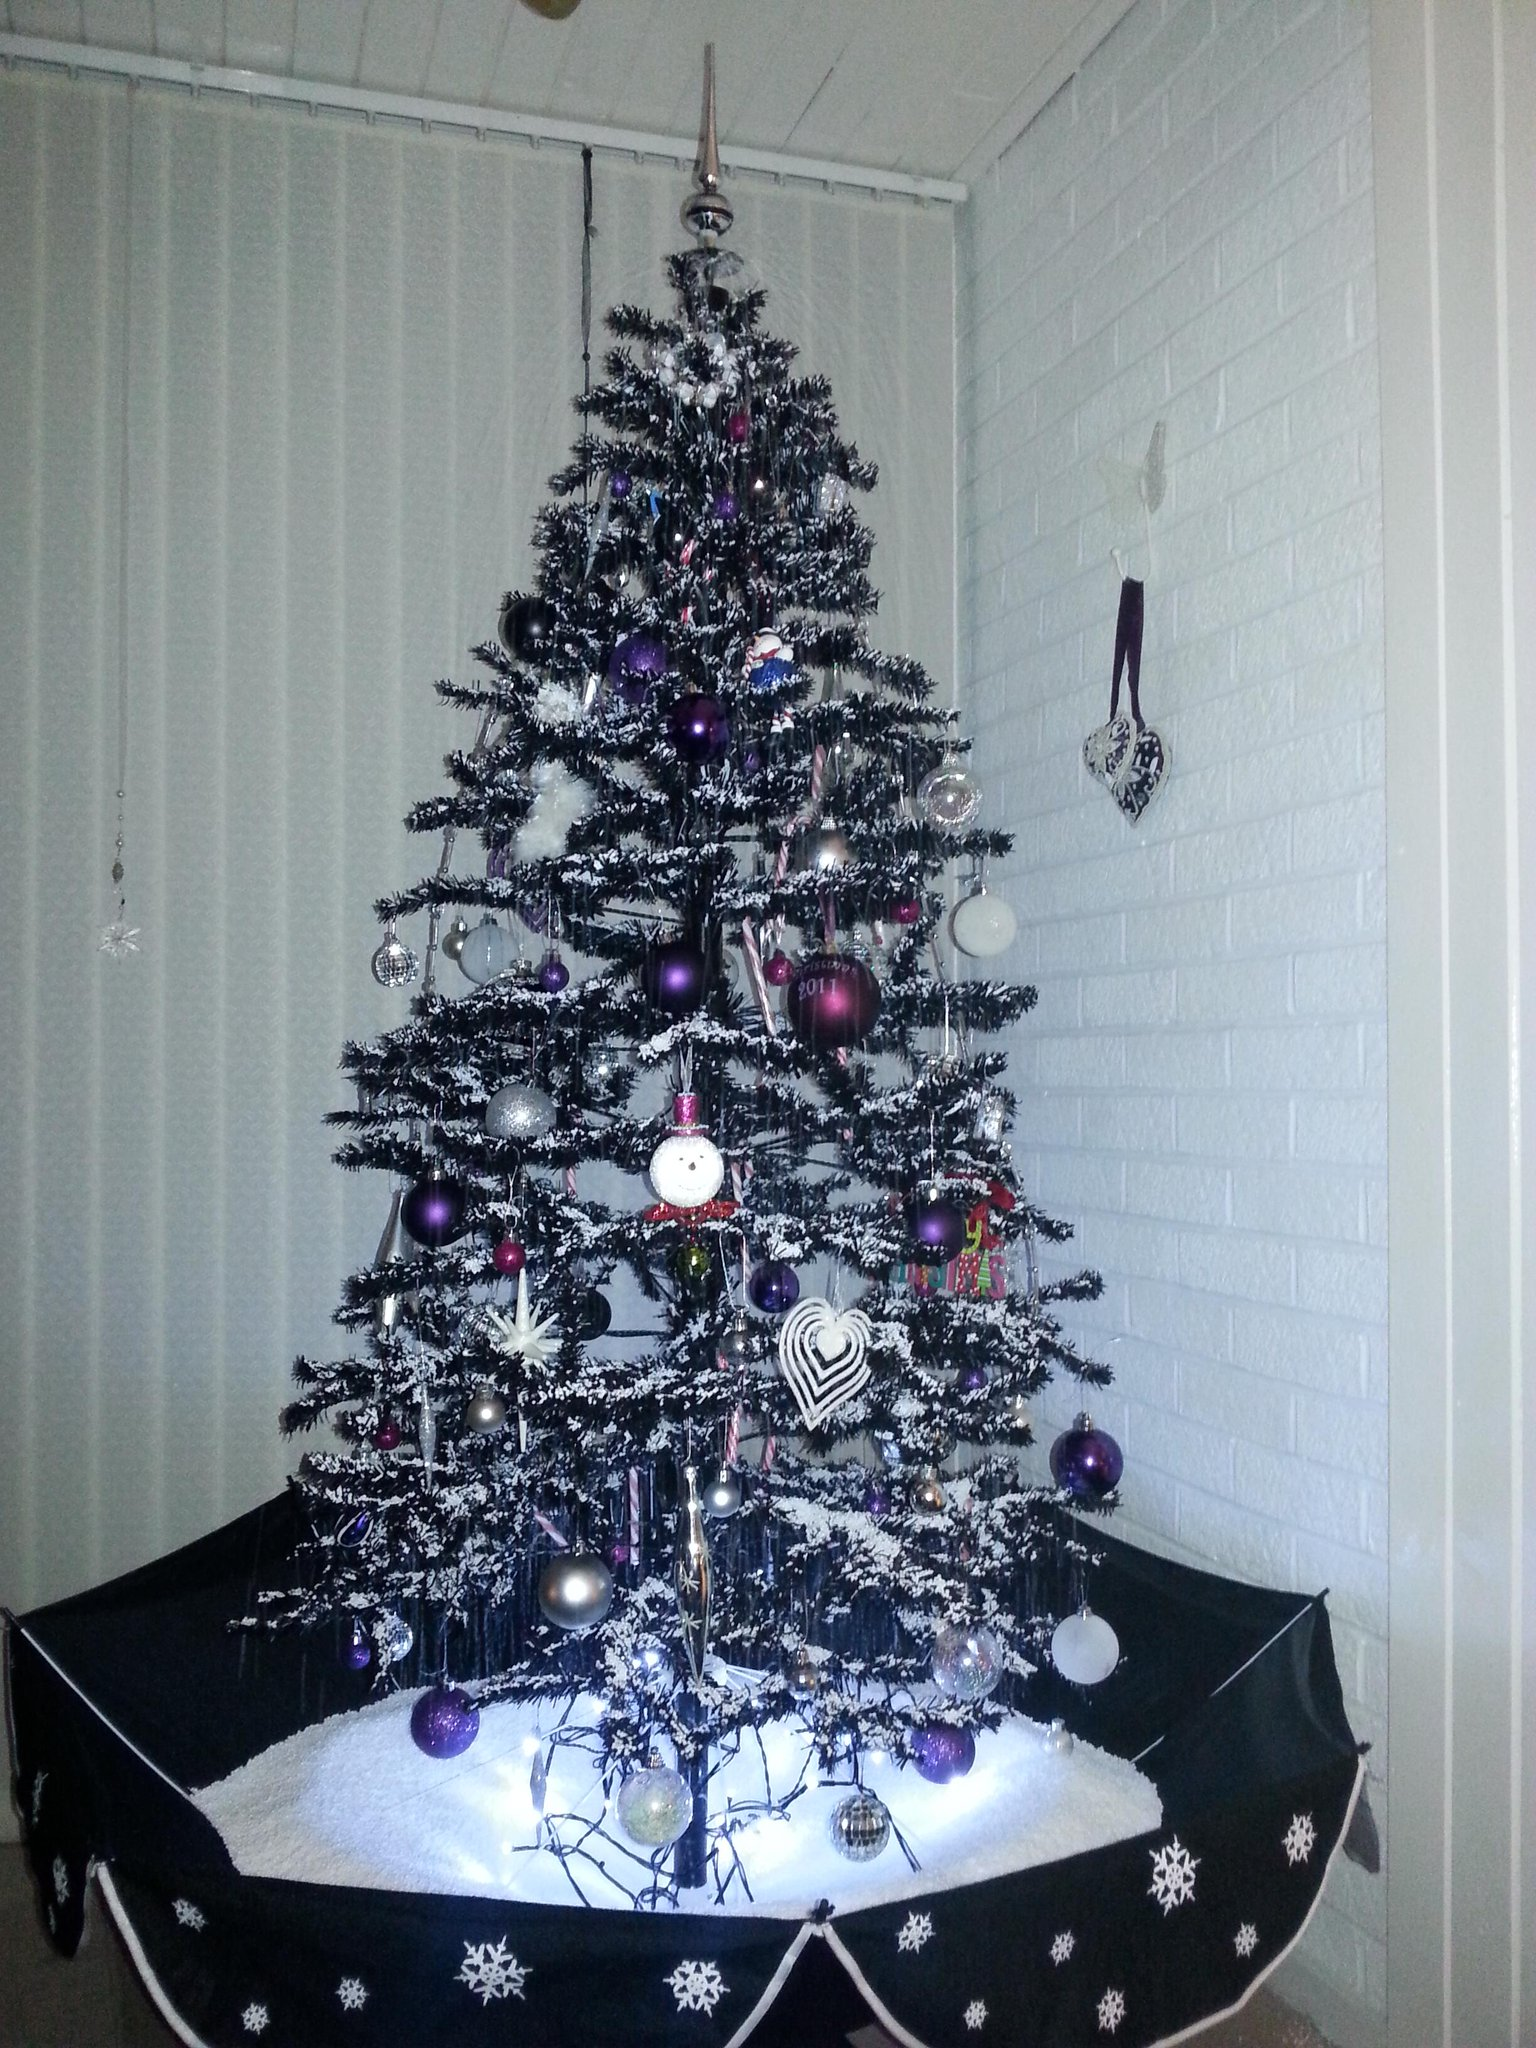 RT @sashaslater77: @KirstieMAllsopp Our black, snowing tree. Merry Christmas xx http://t.co/xhc3Y7GI3C